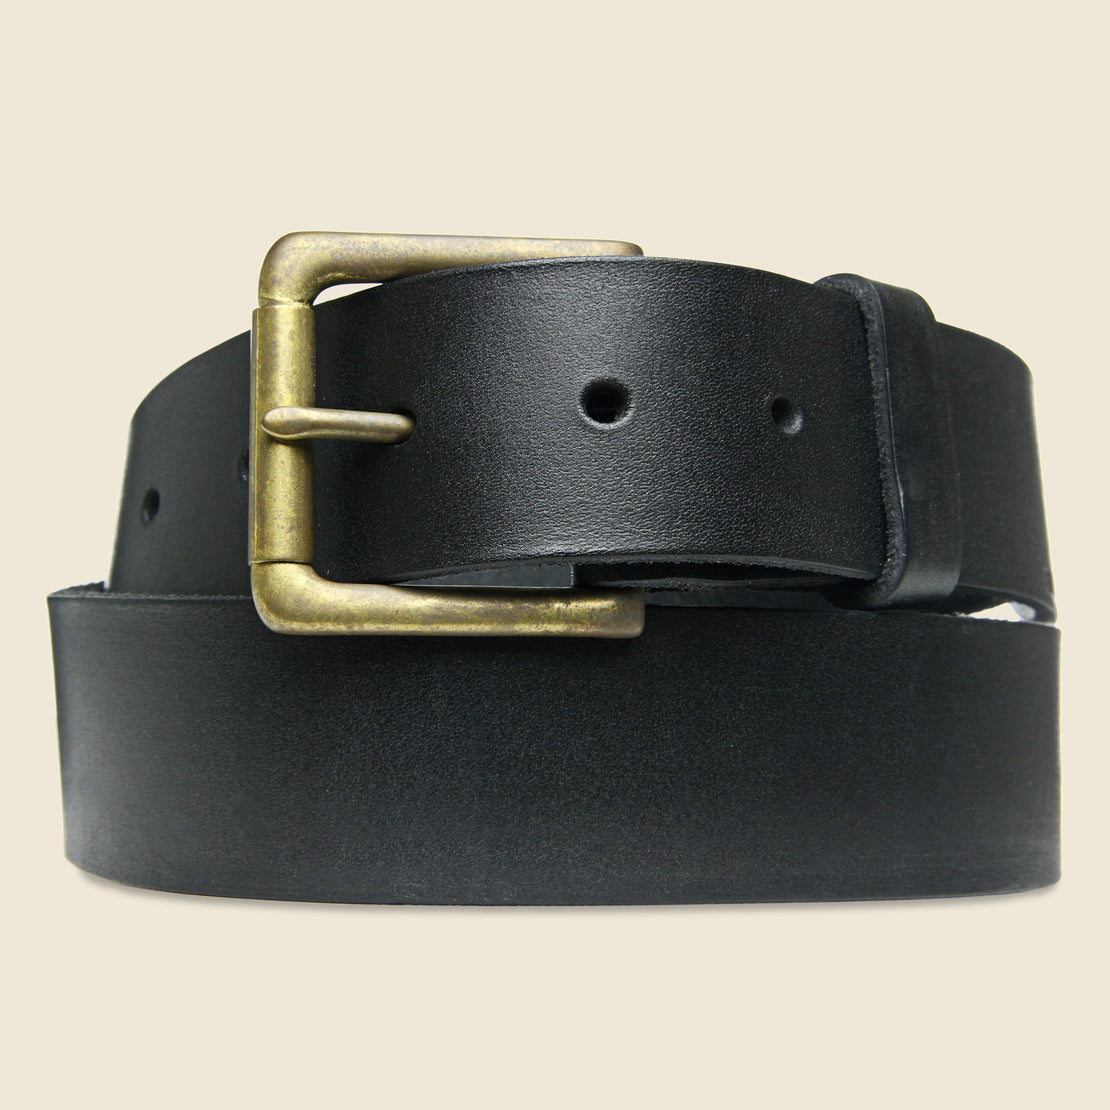 BILLYKIRK Roller Bar Belt - Black